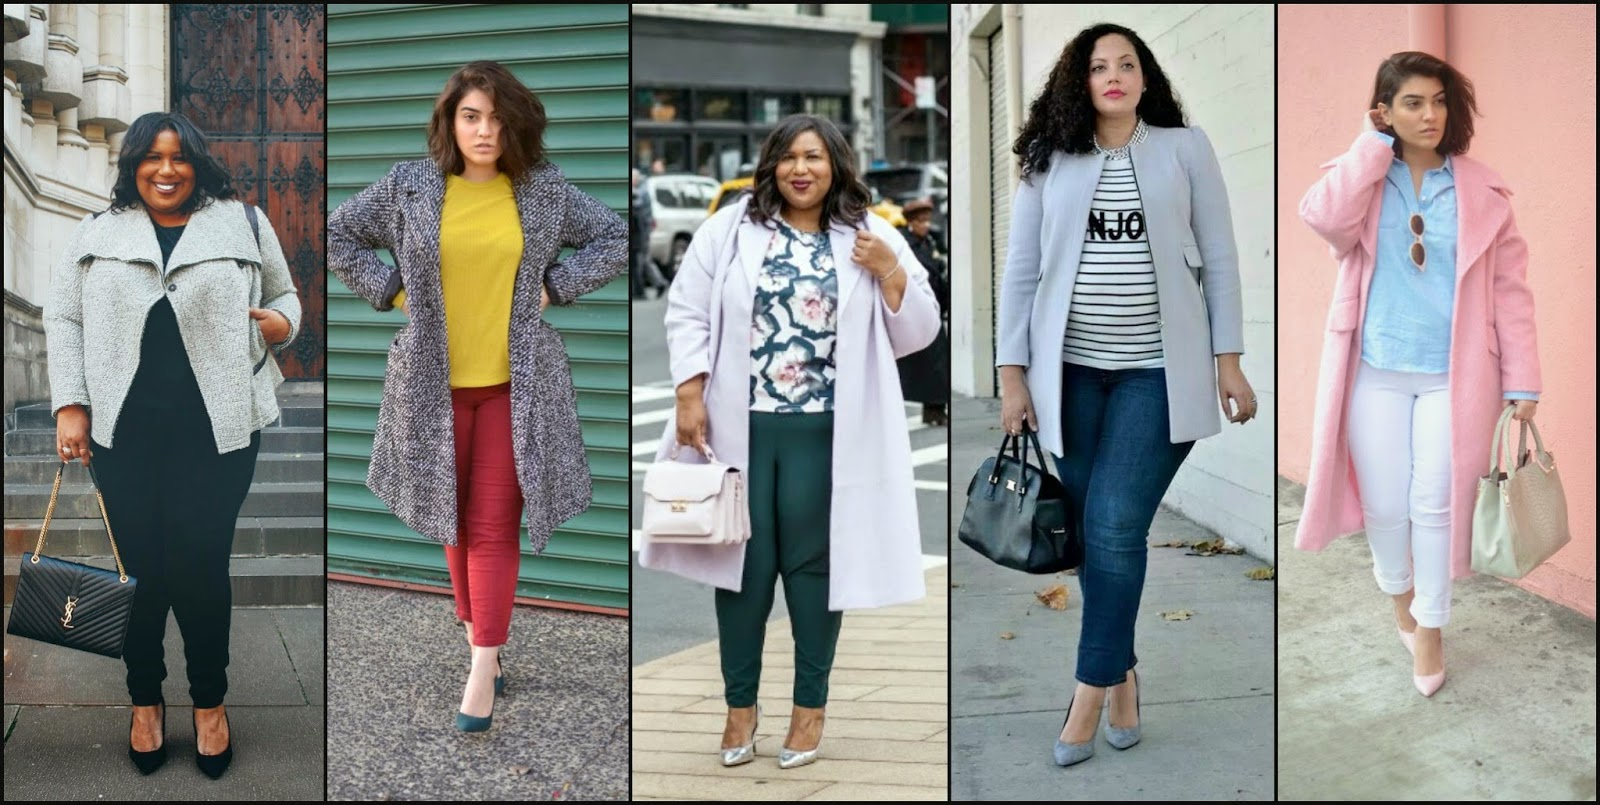 98d6402d332f LookBook...  Winter Outfit ideas for Curvy Girls  1